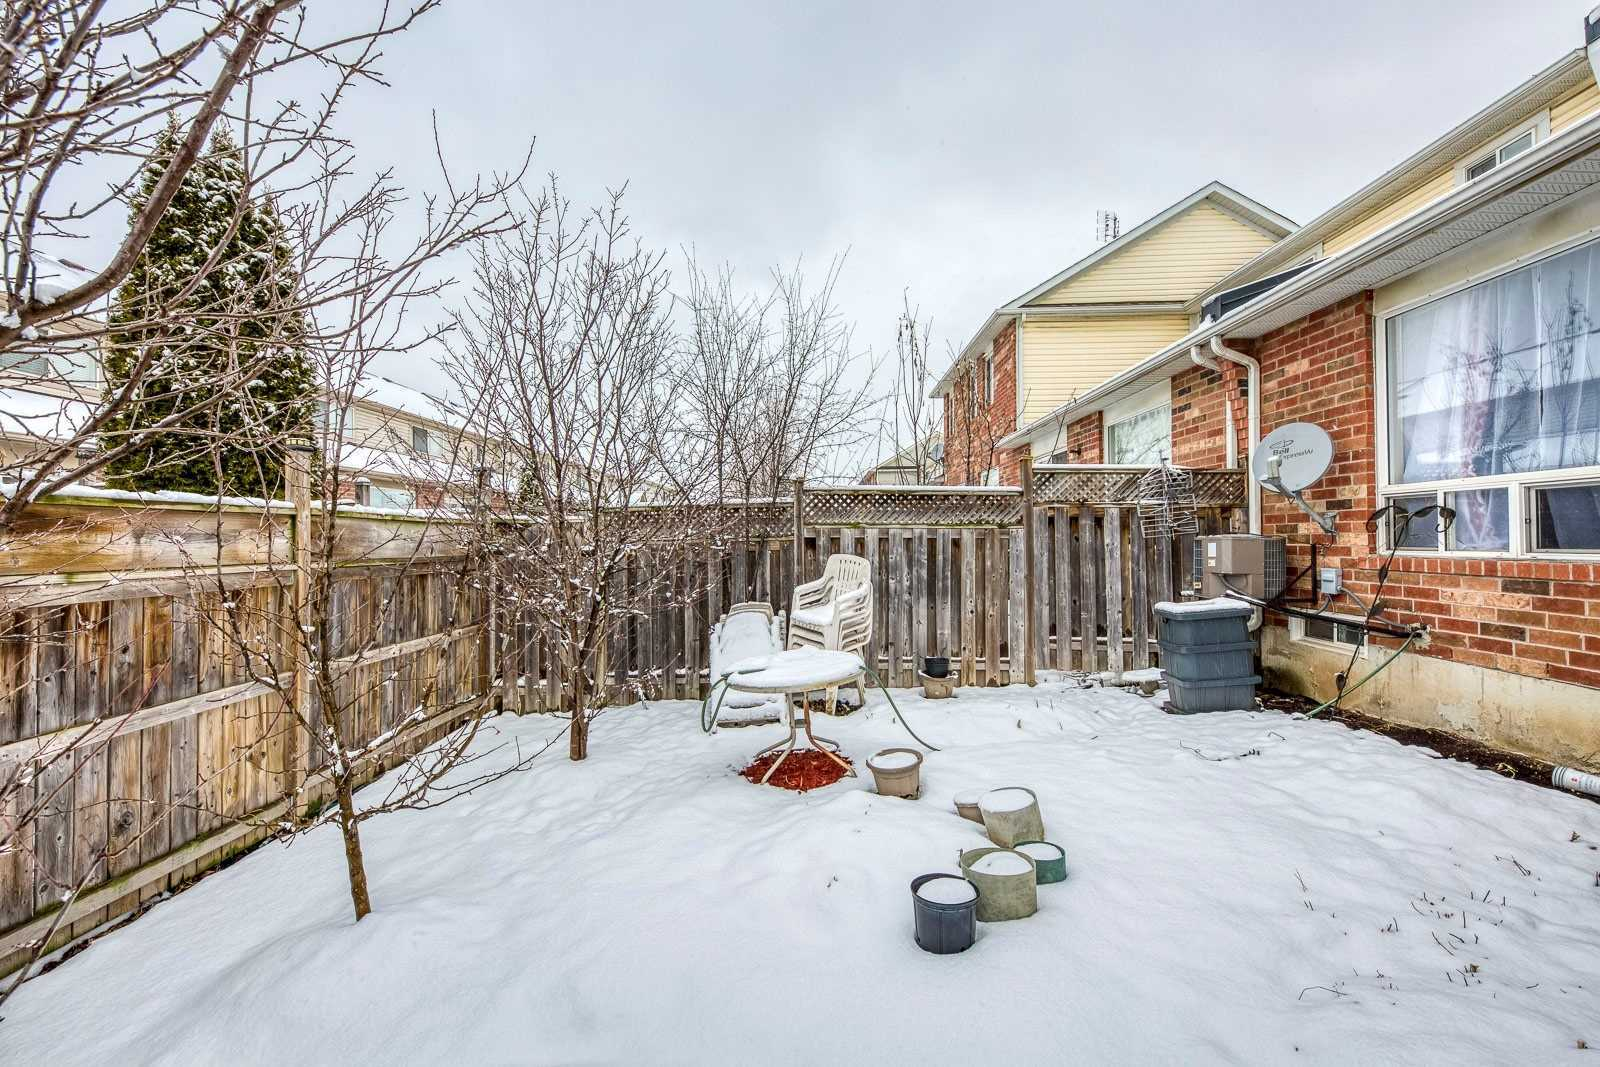 Image 11 of 20 showing inside of 3 Bedroom Att/Row/Twnhouse 2-Storey house for sale at 682 Edwards Ave, Milton L9T6B3